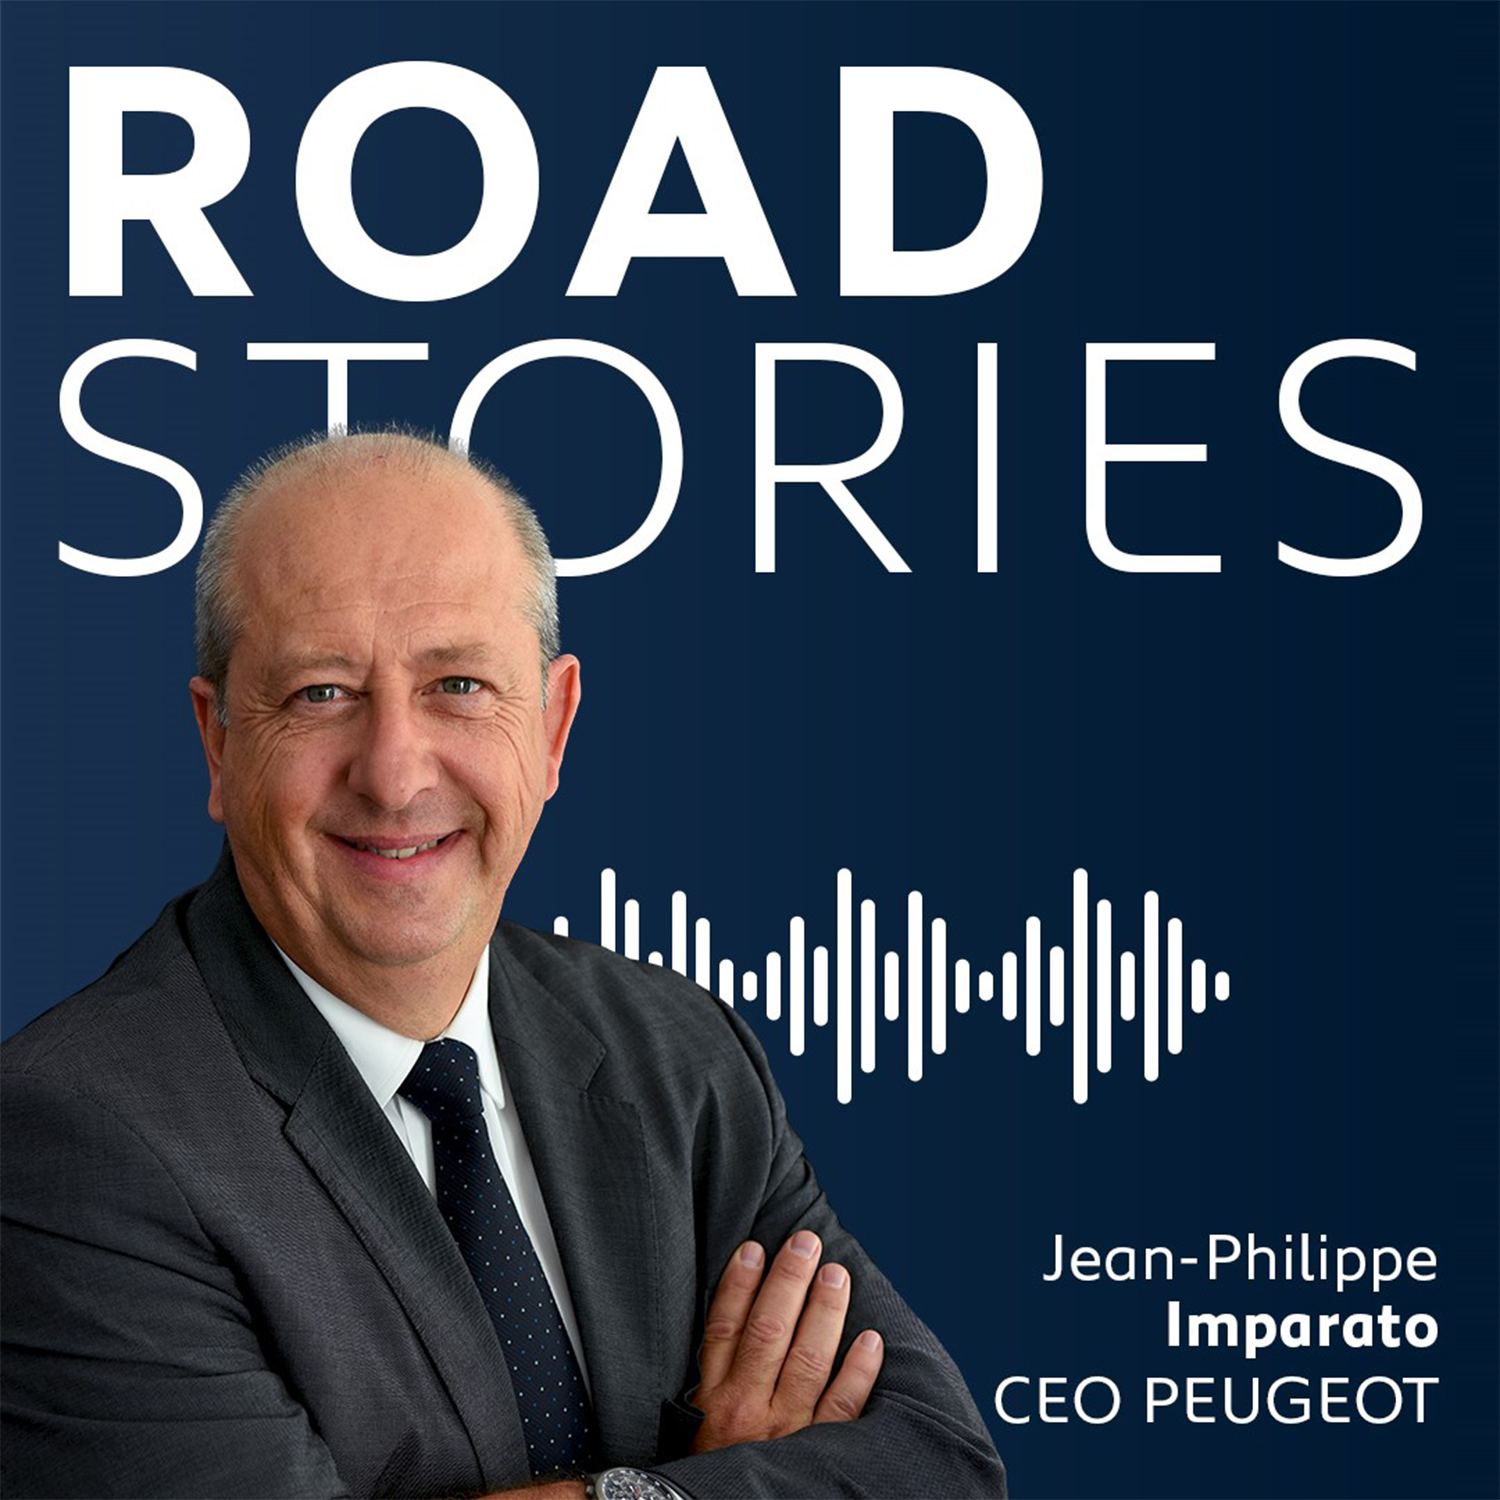 Road Stories, le podcast de Jean-Philippe Imparato, CEO de Peugeot